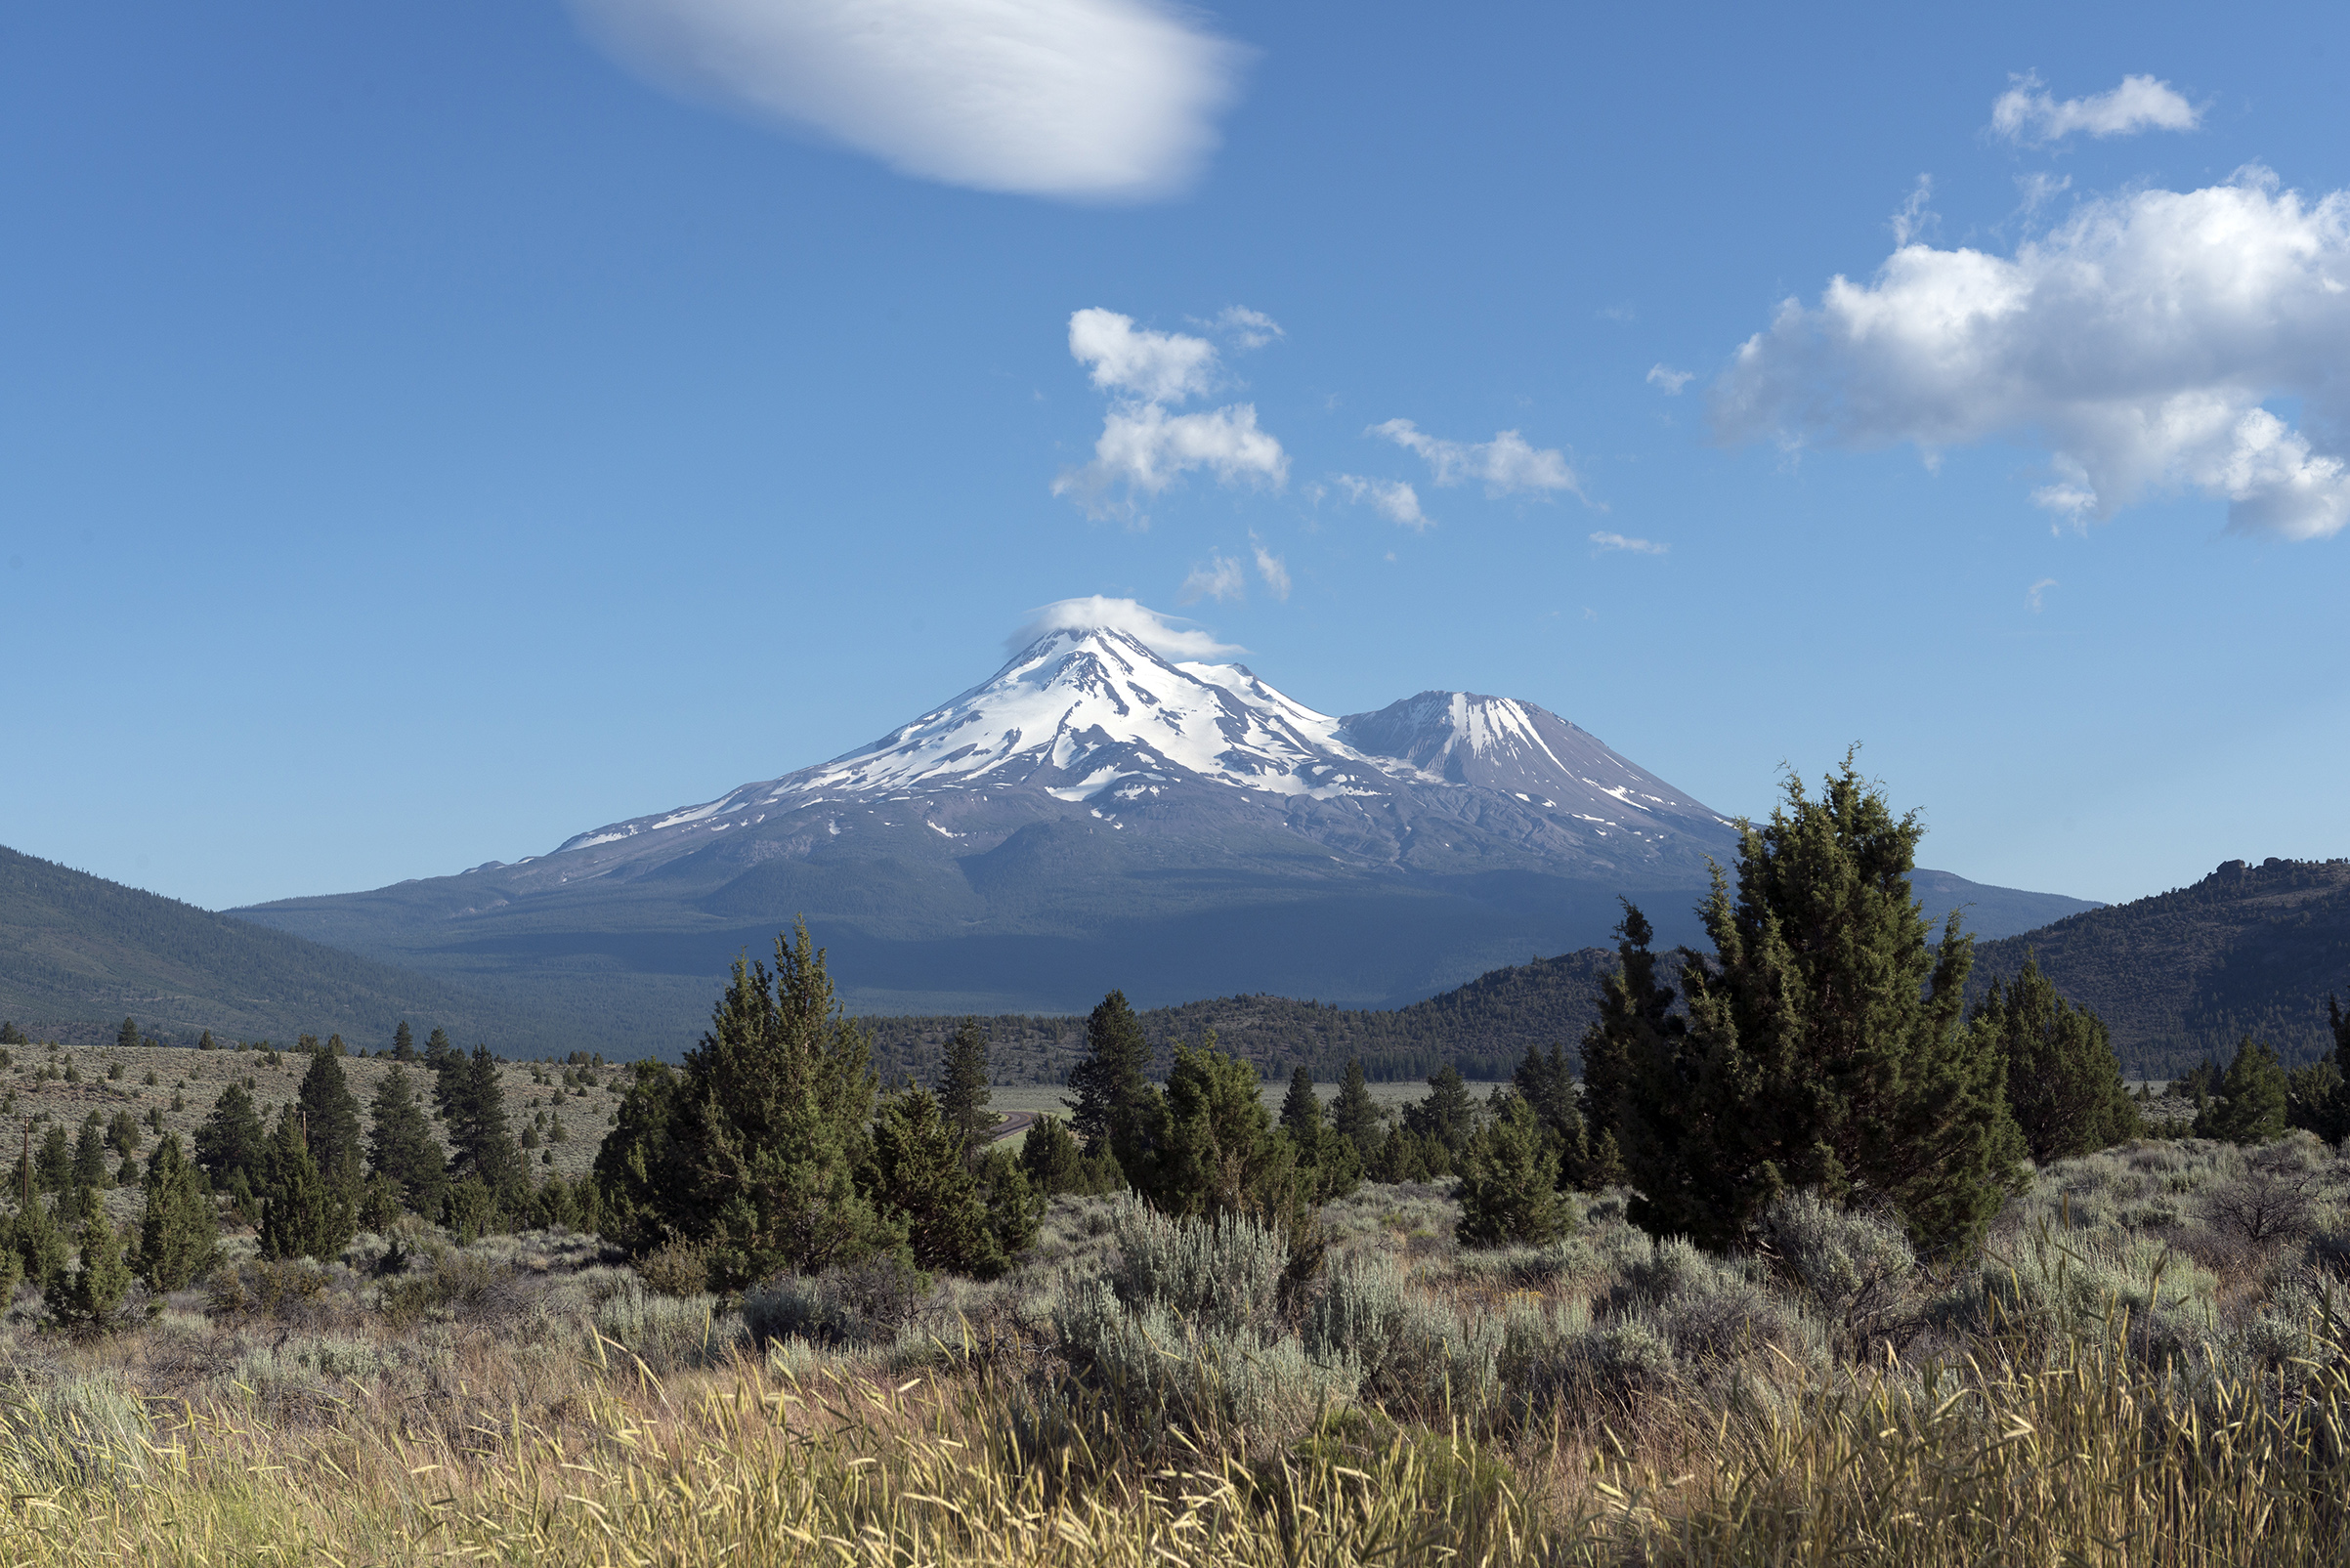 Mount Shasta, is located at the southern end of the Cascade Range in Siskiyou County, California.